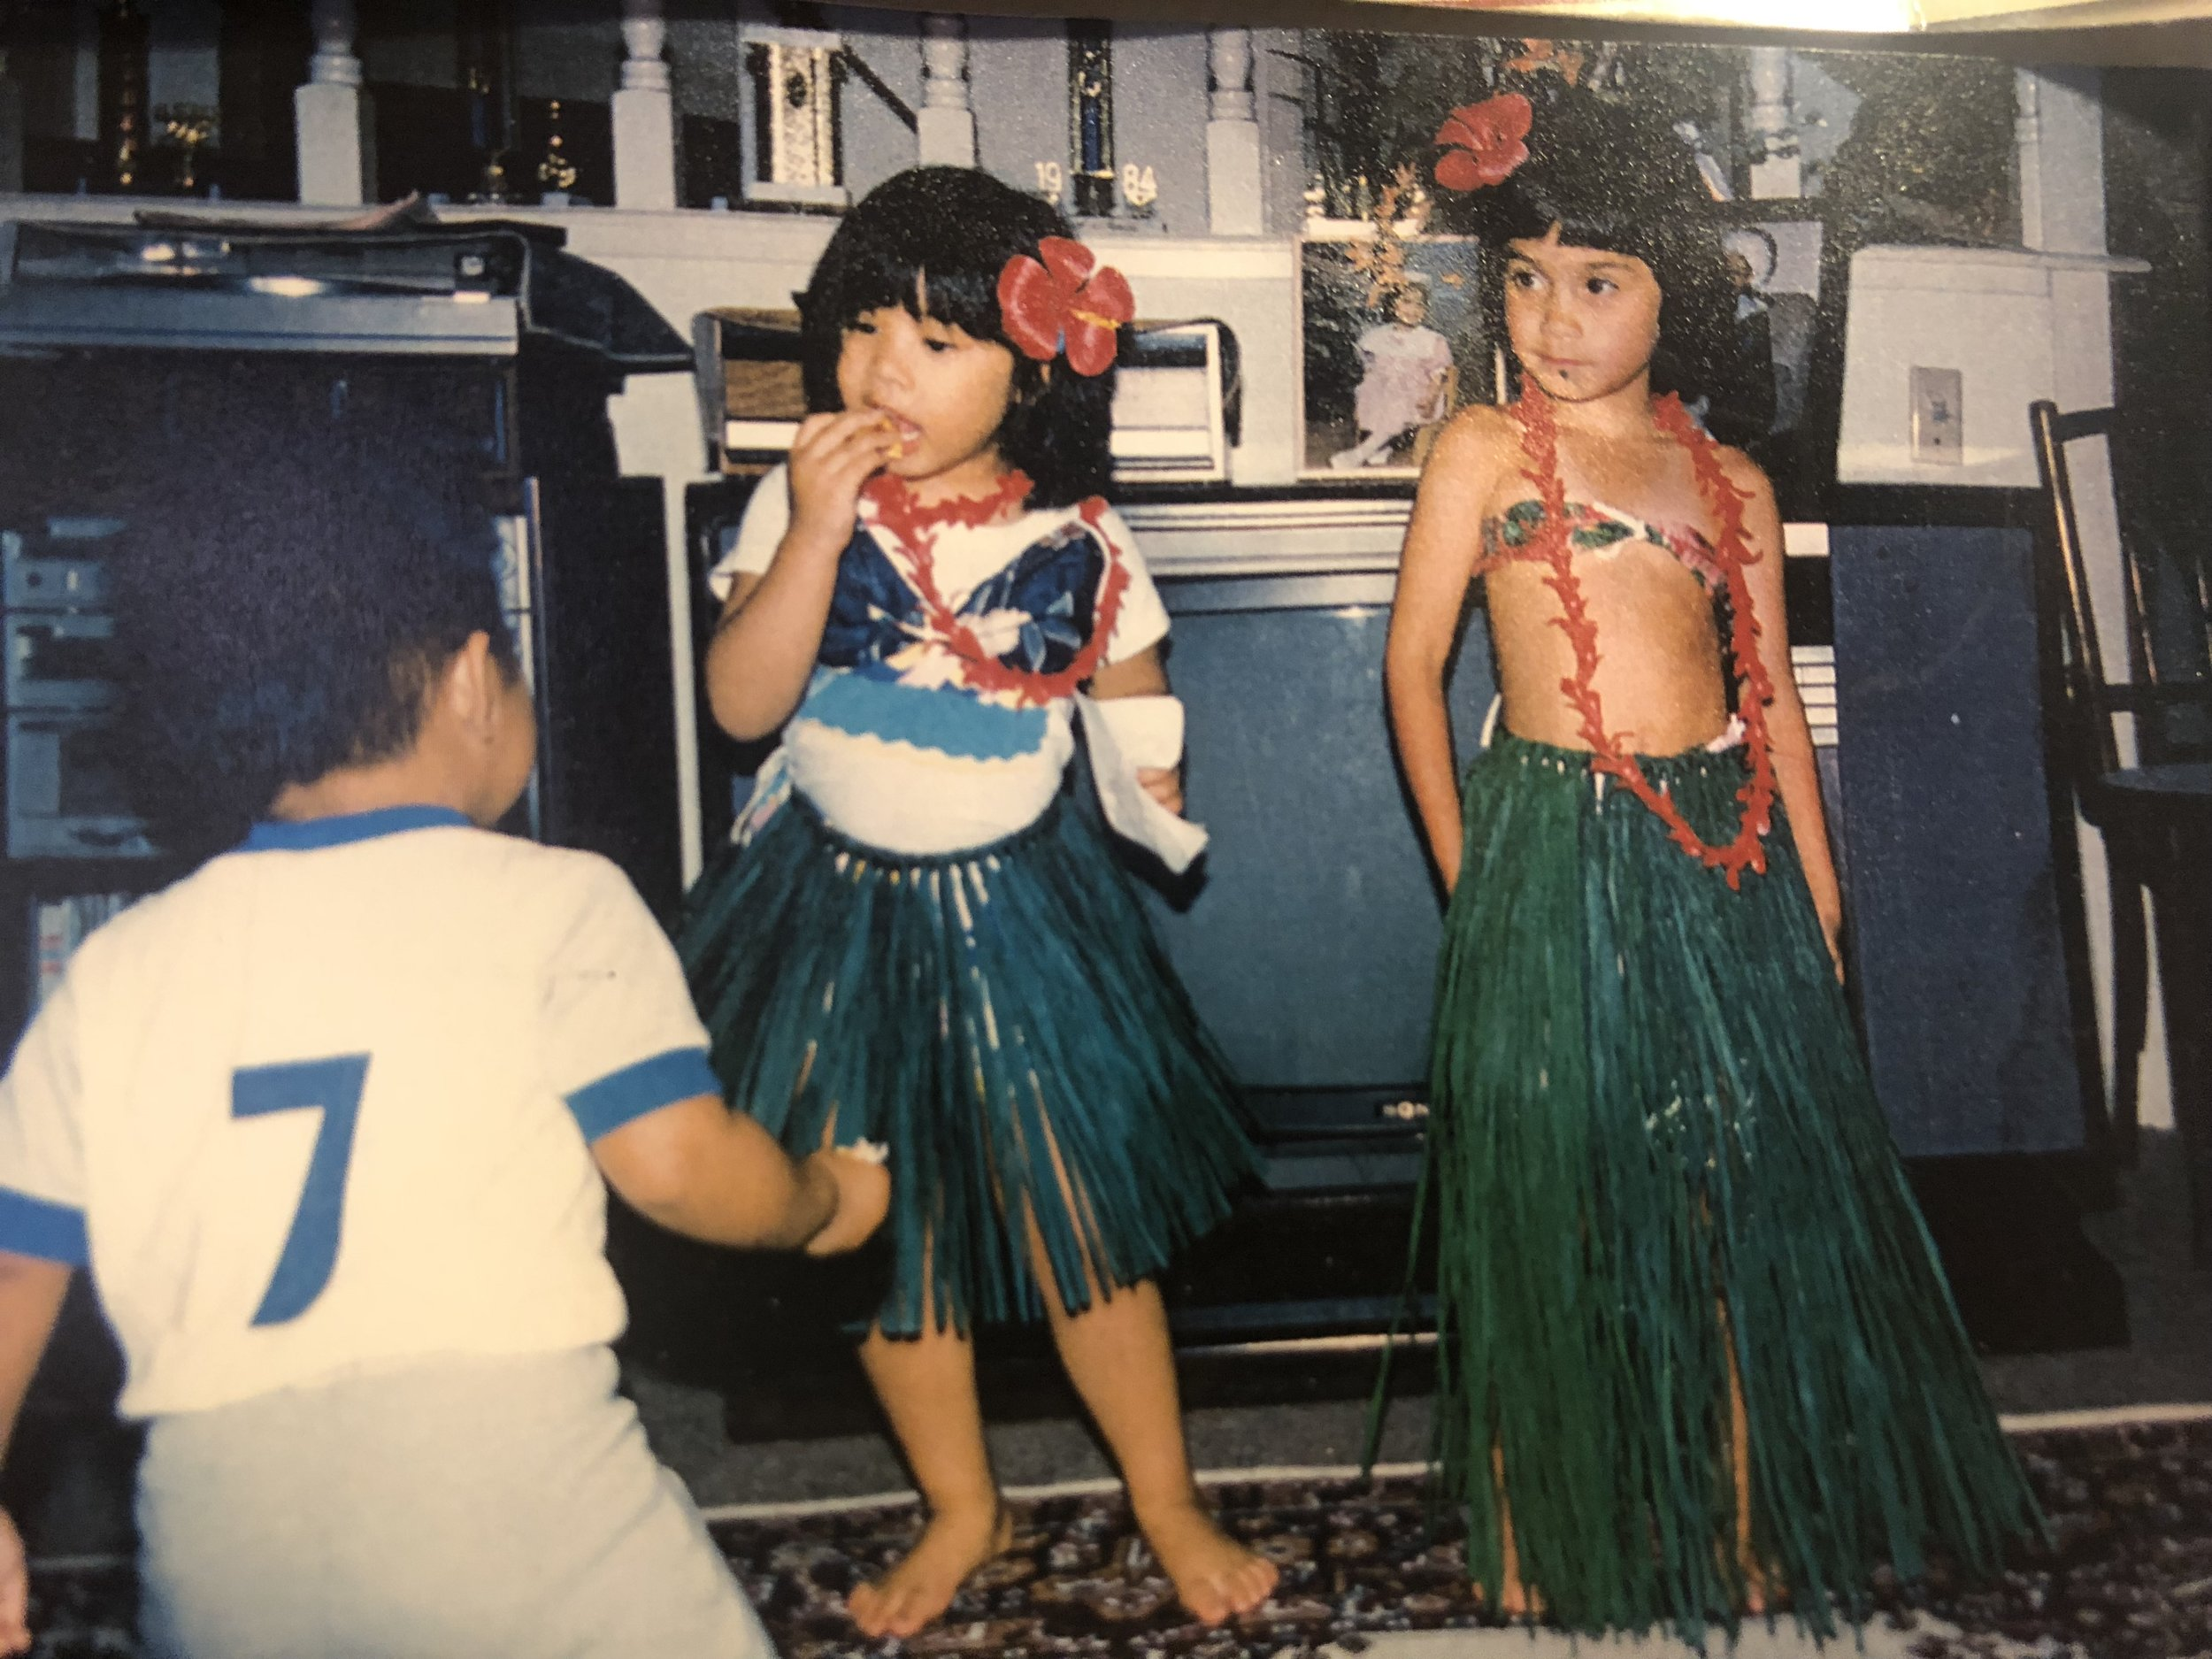 (From left to right) my cousins Kevin, Kathy & me putting on a show at my grandparents' house in the late 1980s.